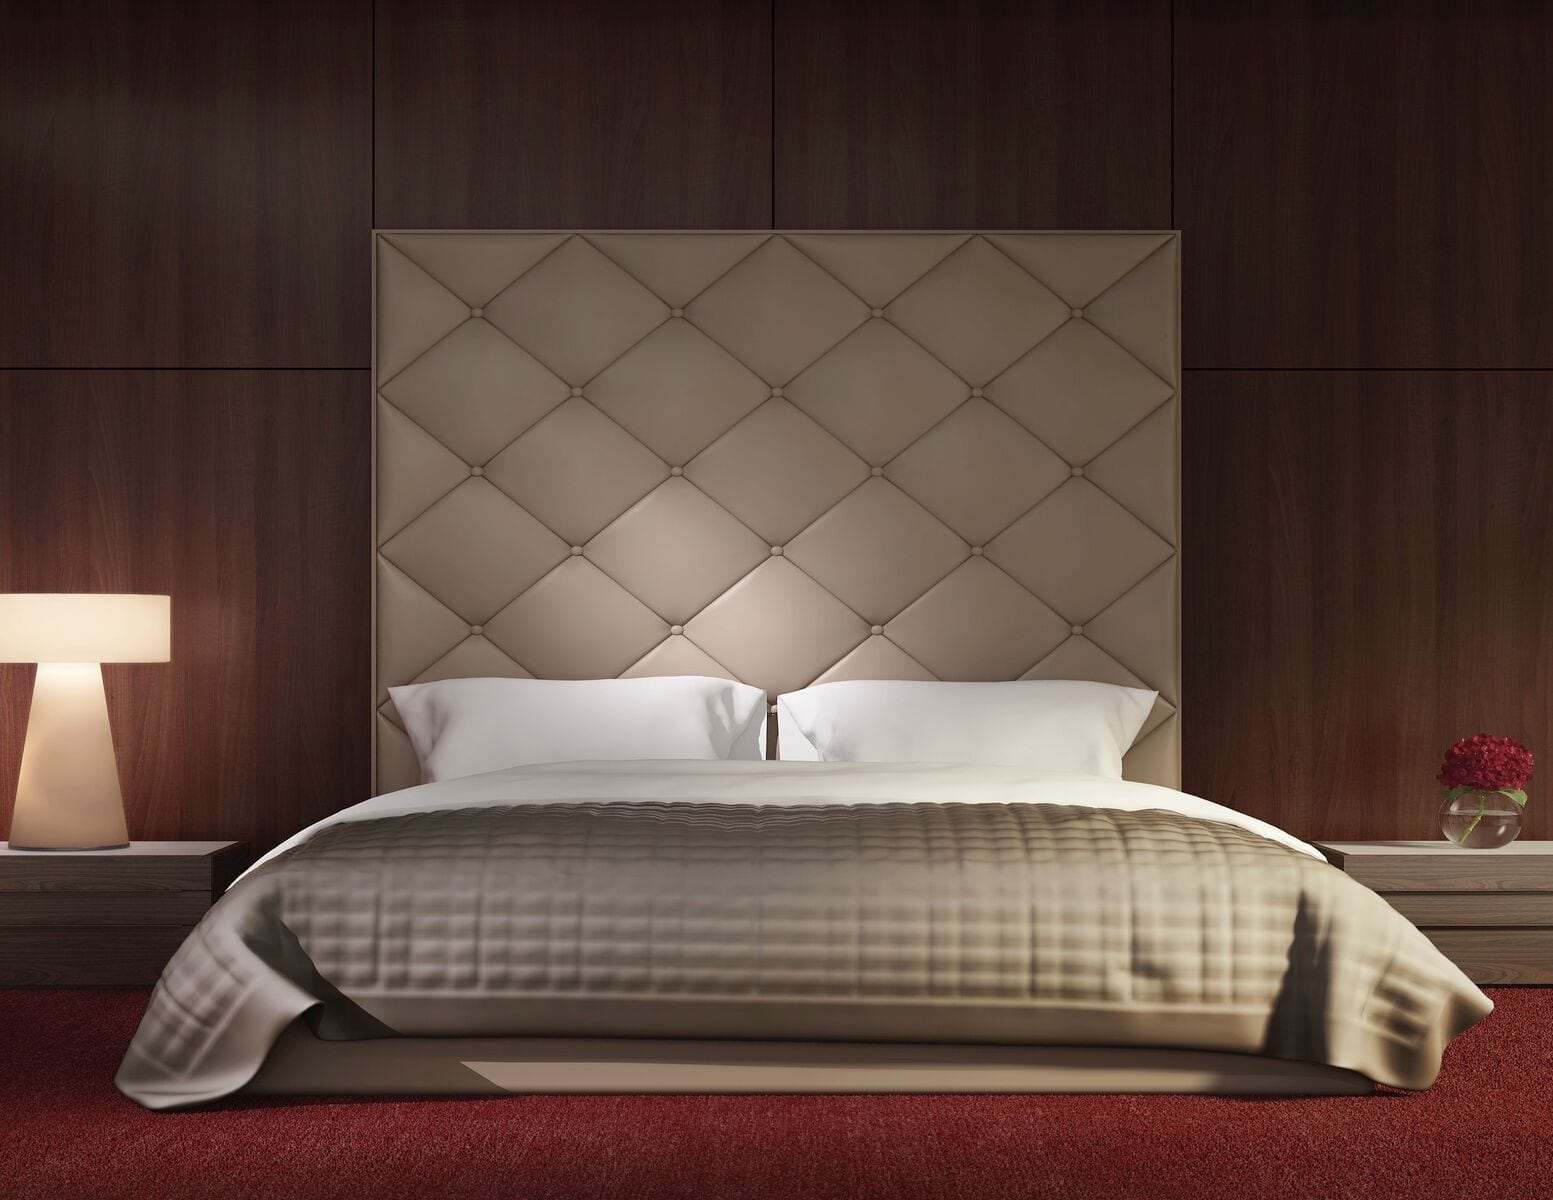 Rand - Wall mounted upholstered, luxury headboard with custom upholstered wall panels - Custom luxury, upholstered beds with high end, bedroom textiles   Blend Home Furnishings